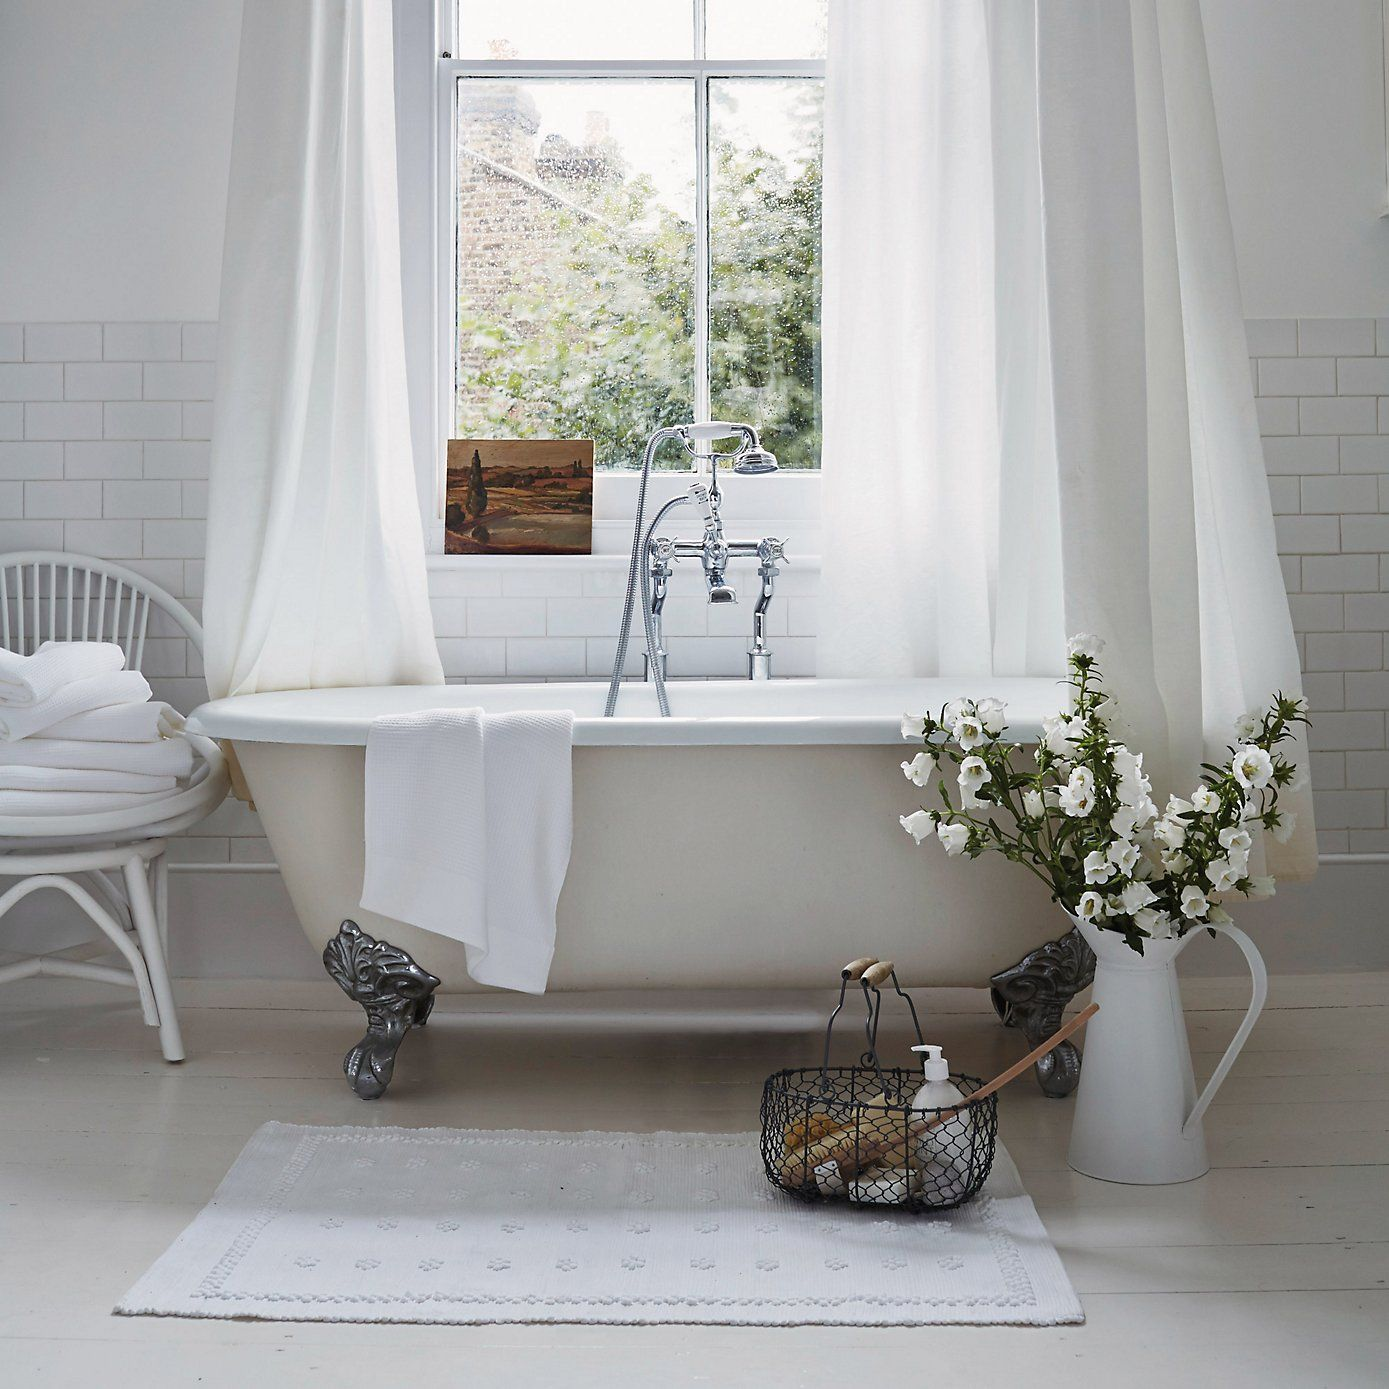 Store bathroom clutter in a decorative basket | The White Company ...